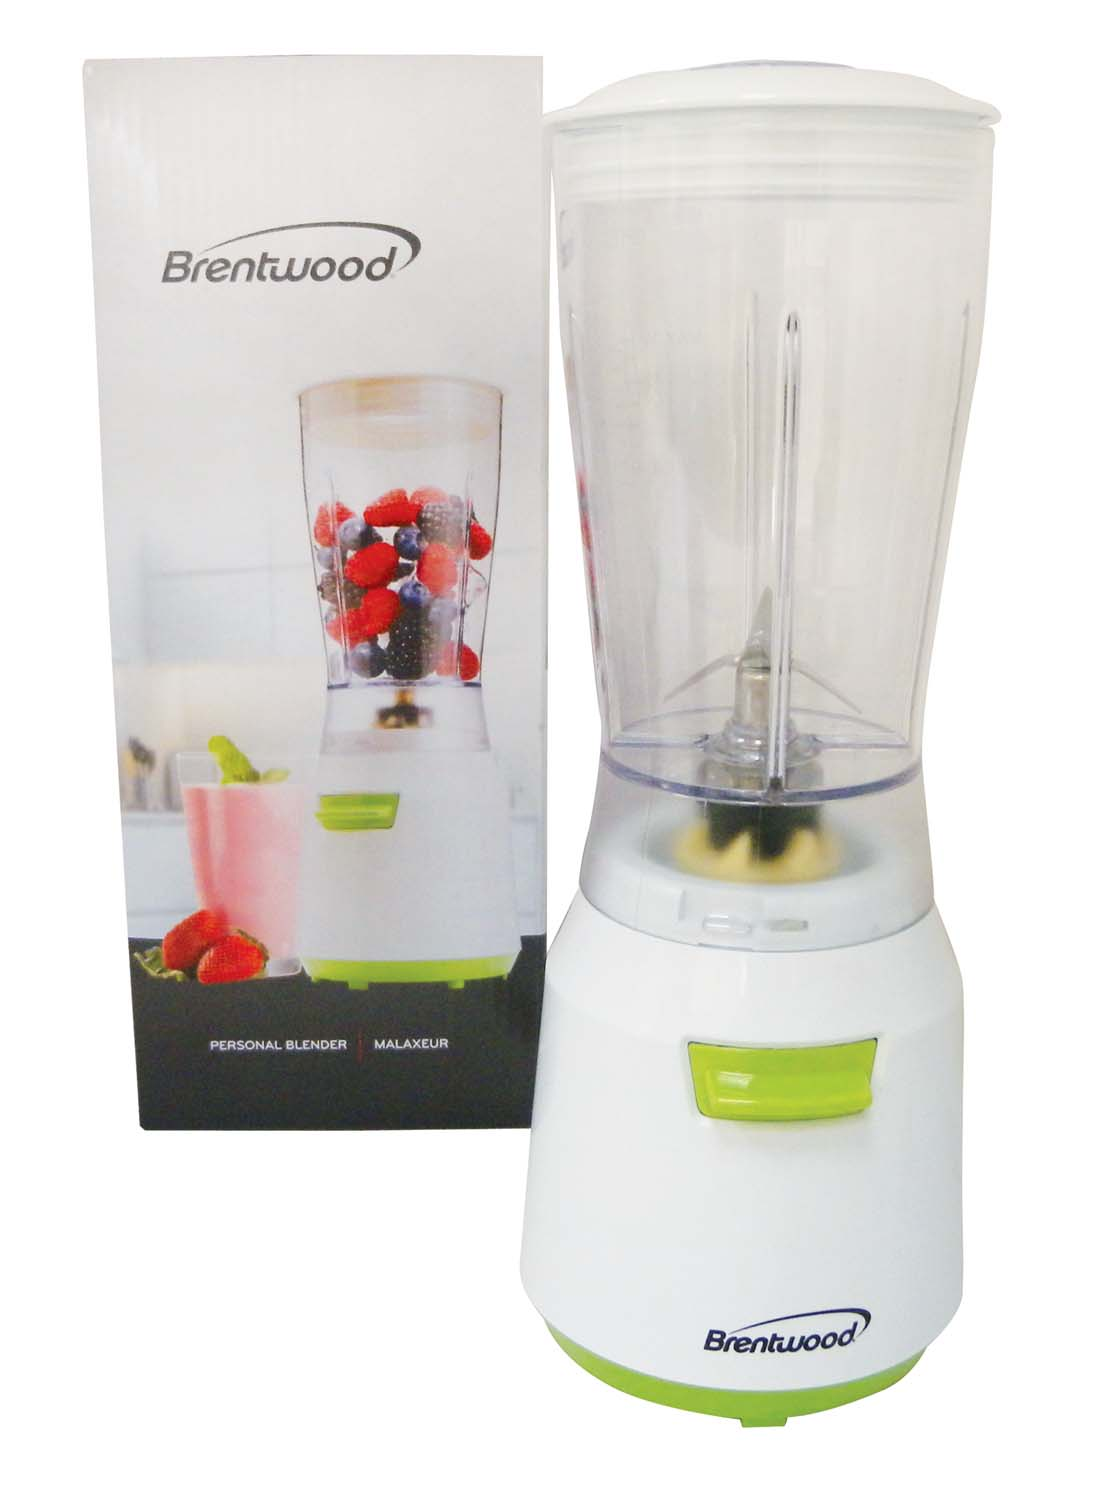 View BRENTWOOD PERSONAL BLENDER 14 OUNCES 180 WATTS WHITE CETL LISTED